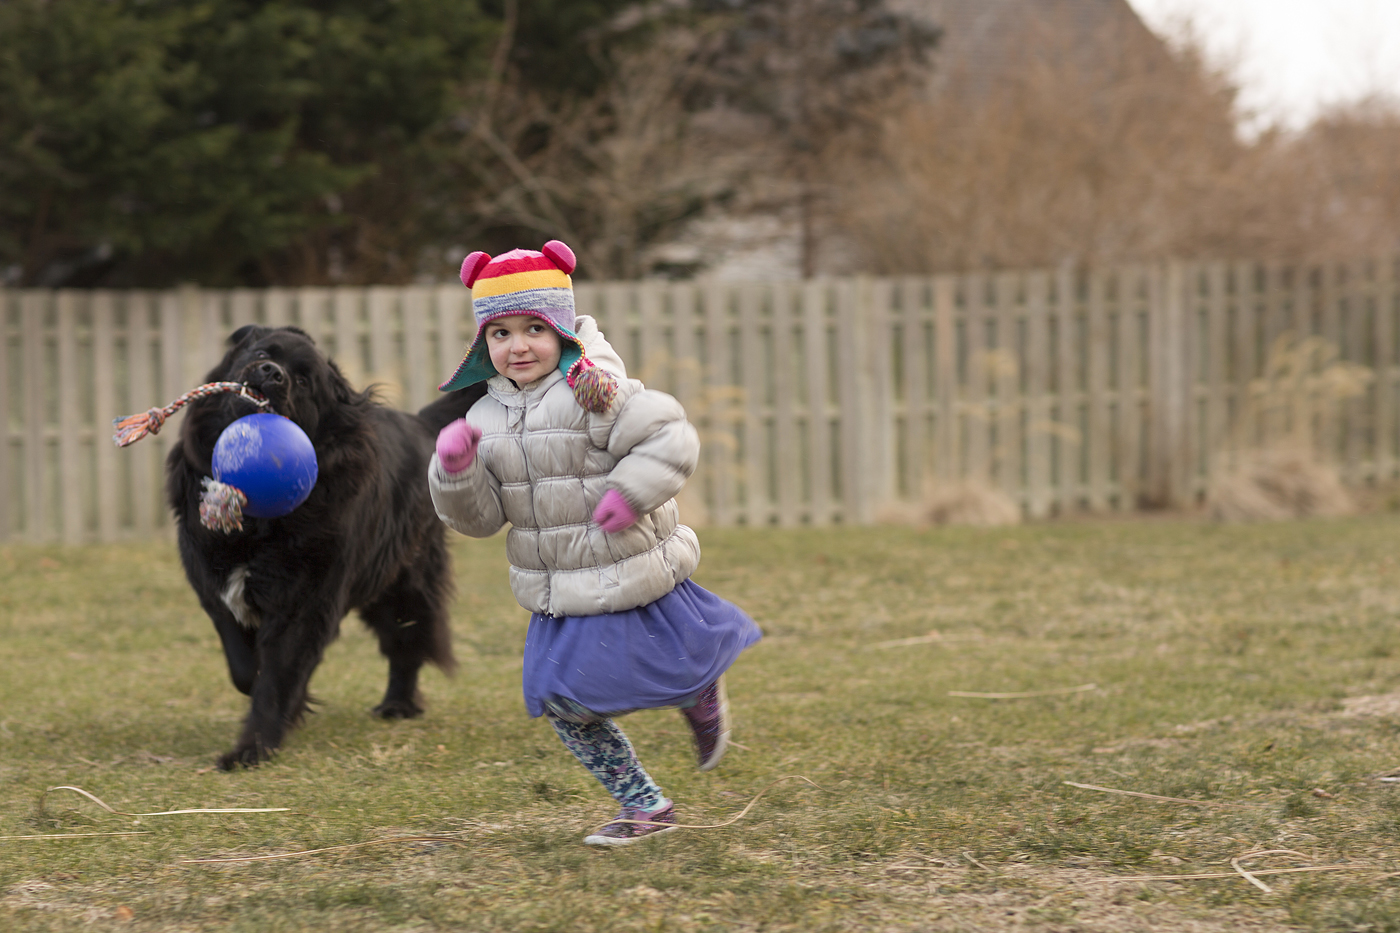 Violet runs with her dog.